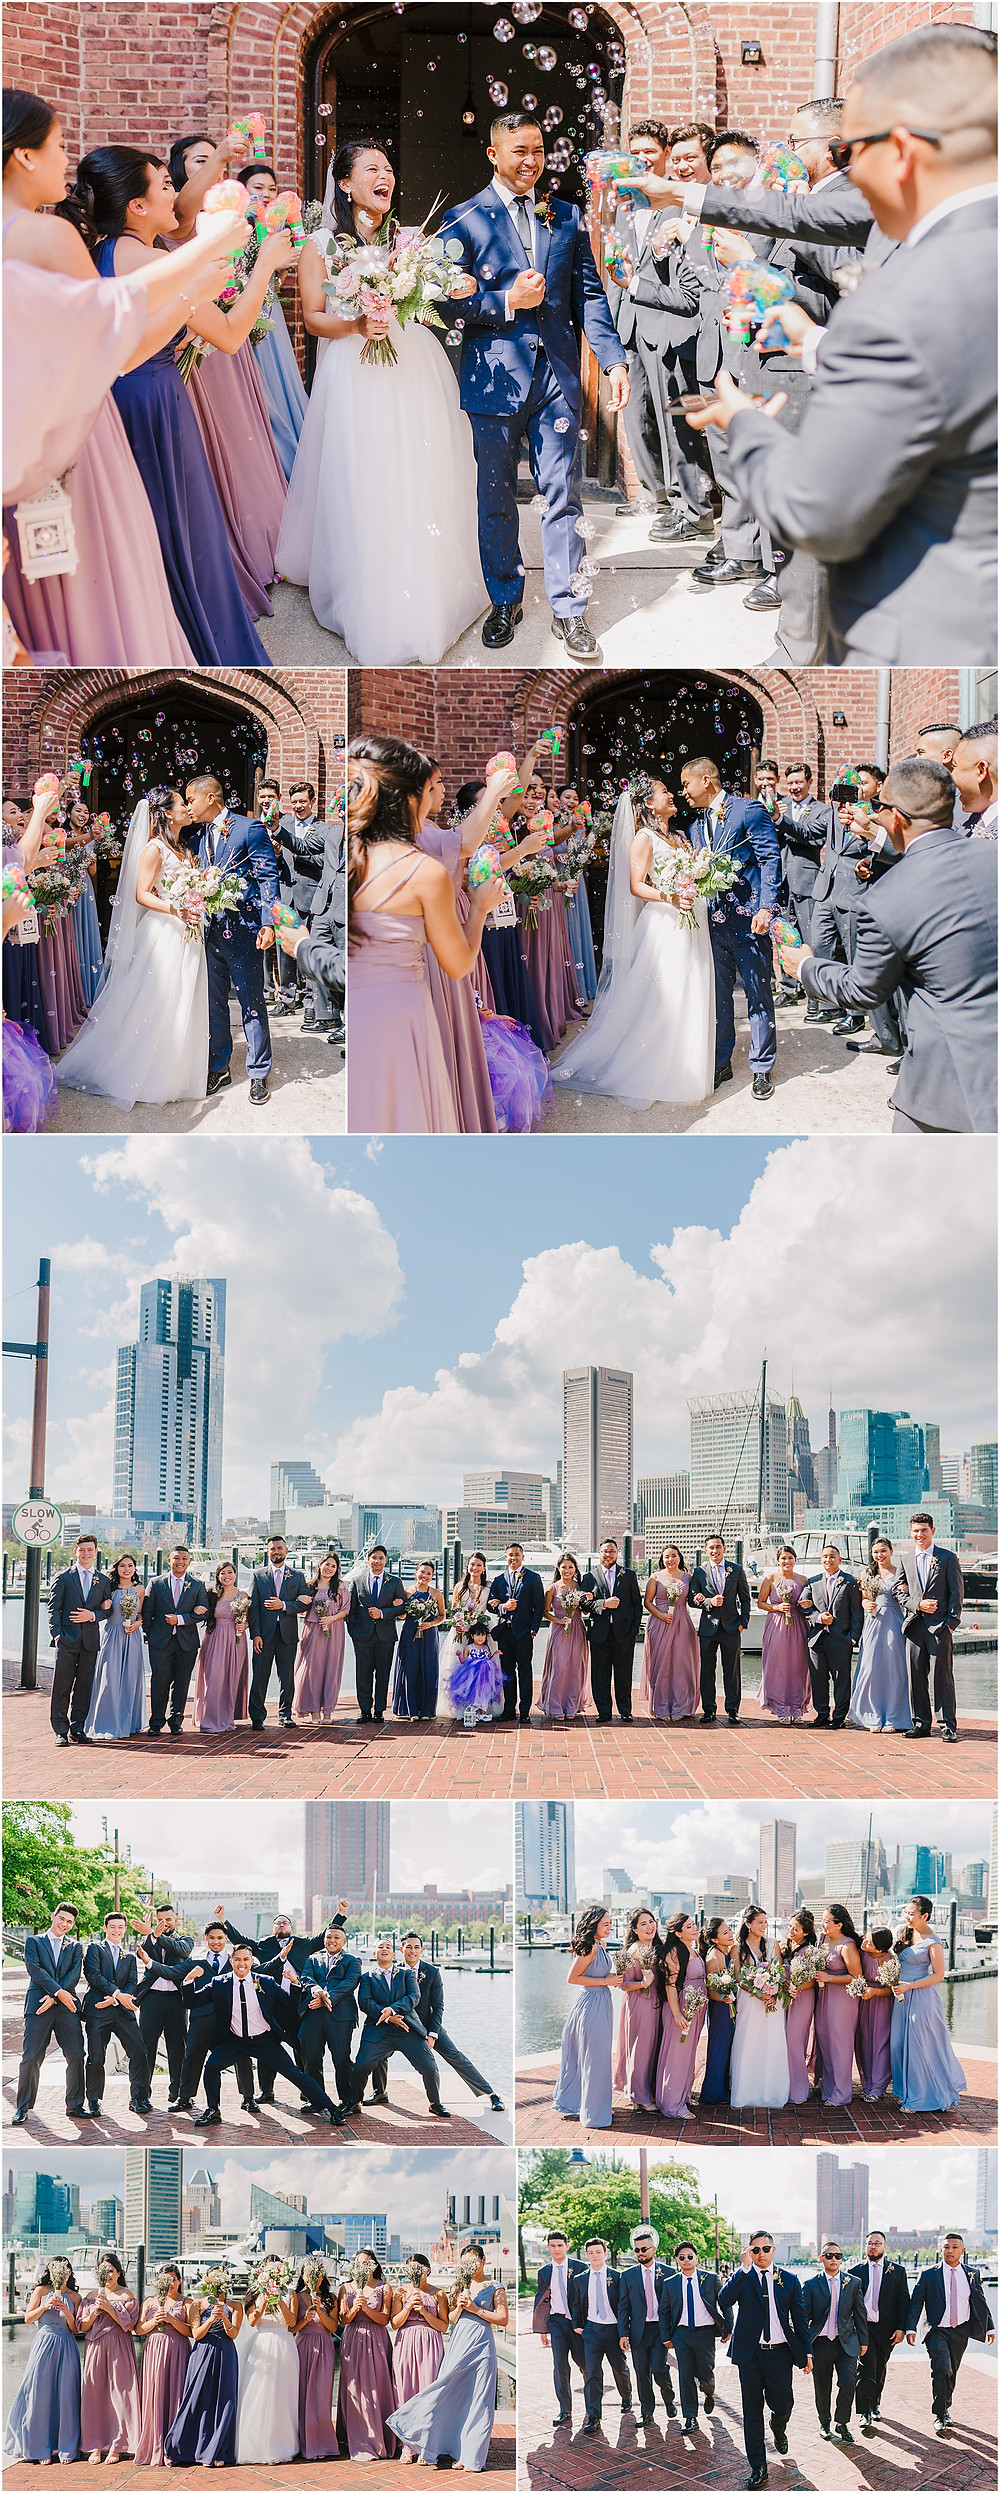 Downtown Baltimore Bridal Party Portraits - Baltimore Wedding Photographer